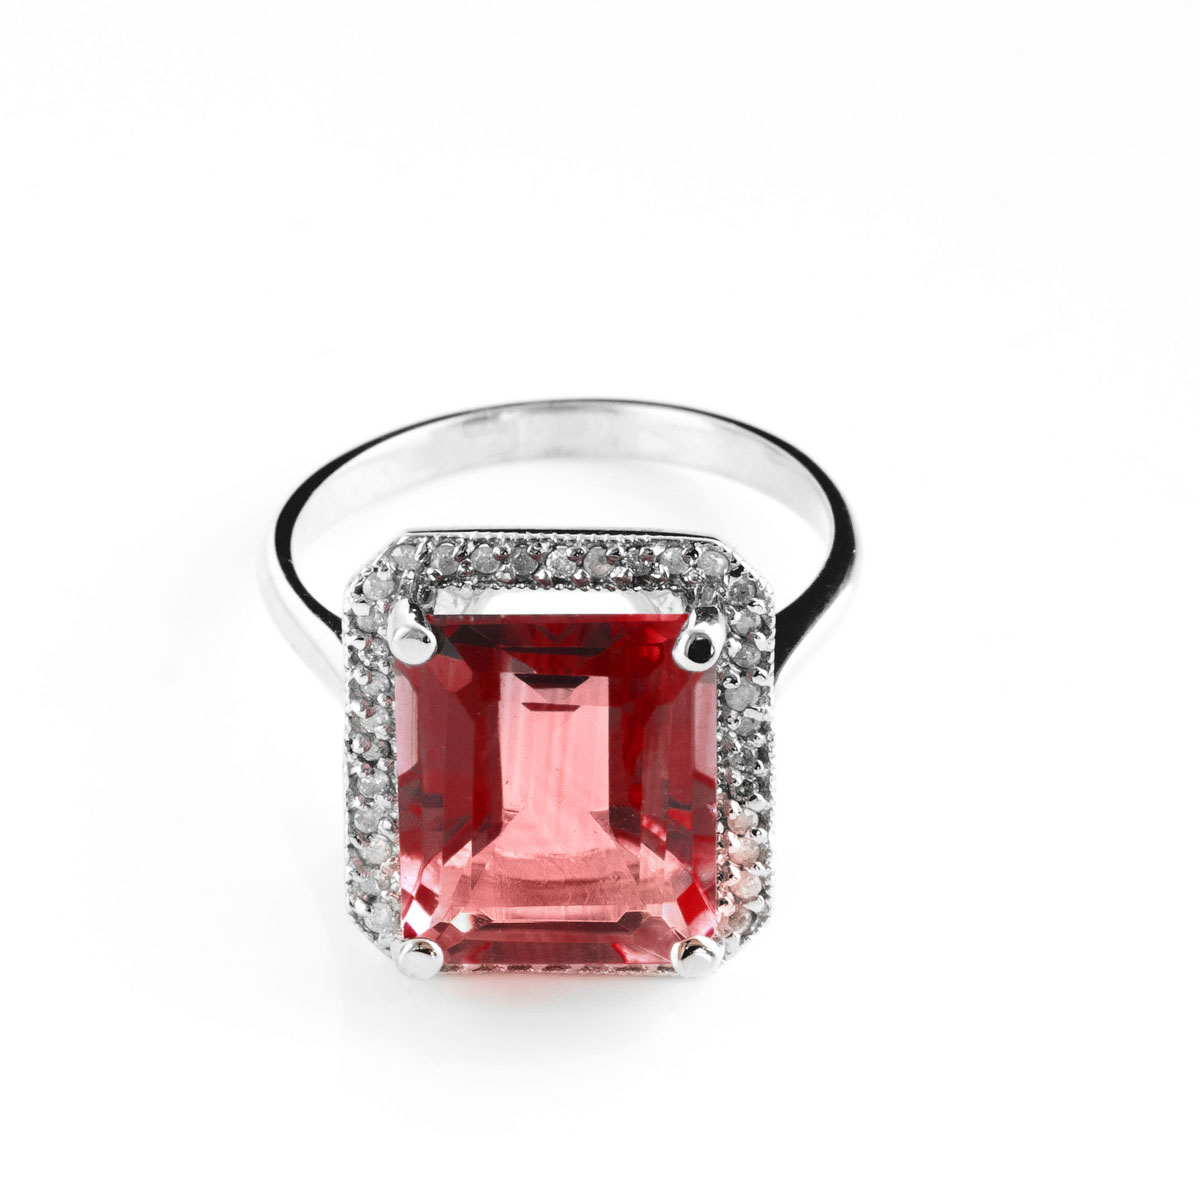 Garnet Halo Ring 7.7 ctw in 9ct White Gold